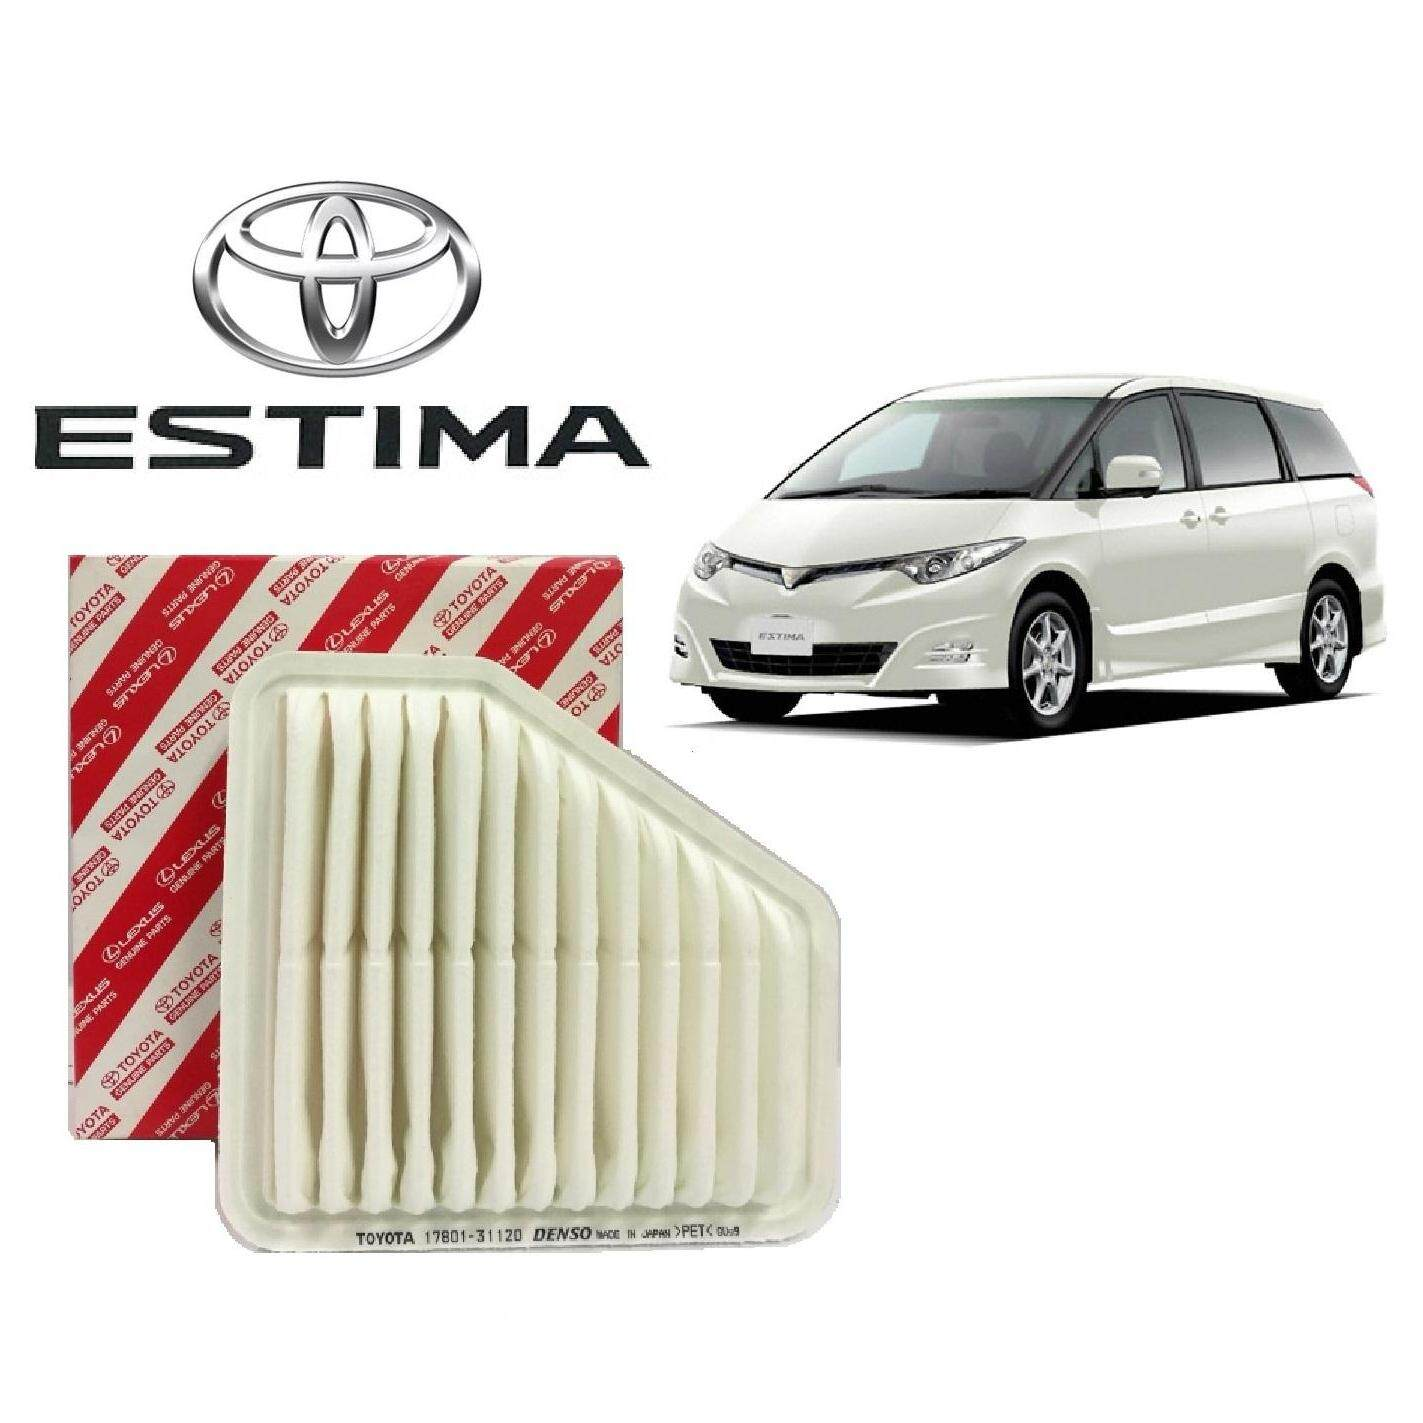 Toyota Products Accessories For The Best Prices In Malaysia 1997 Camry Fuel Filter Location Estima Acr50 High Quality Air 2006 2015